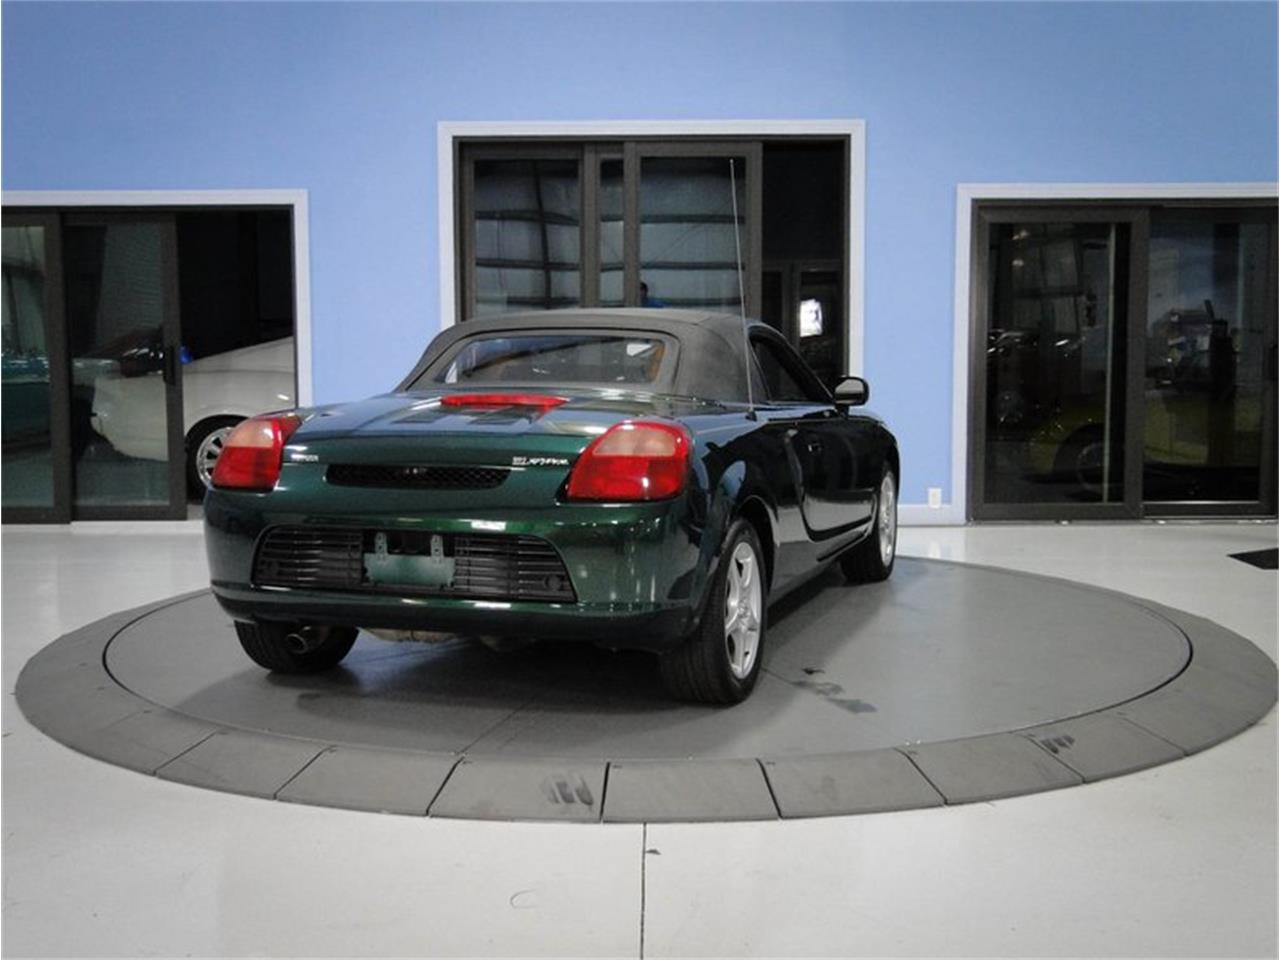 Large Picture of '02 Toyota MR2 located in Florida - $8,997.00 Offered by Skyway Classics - PLS5